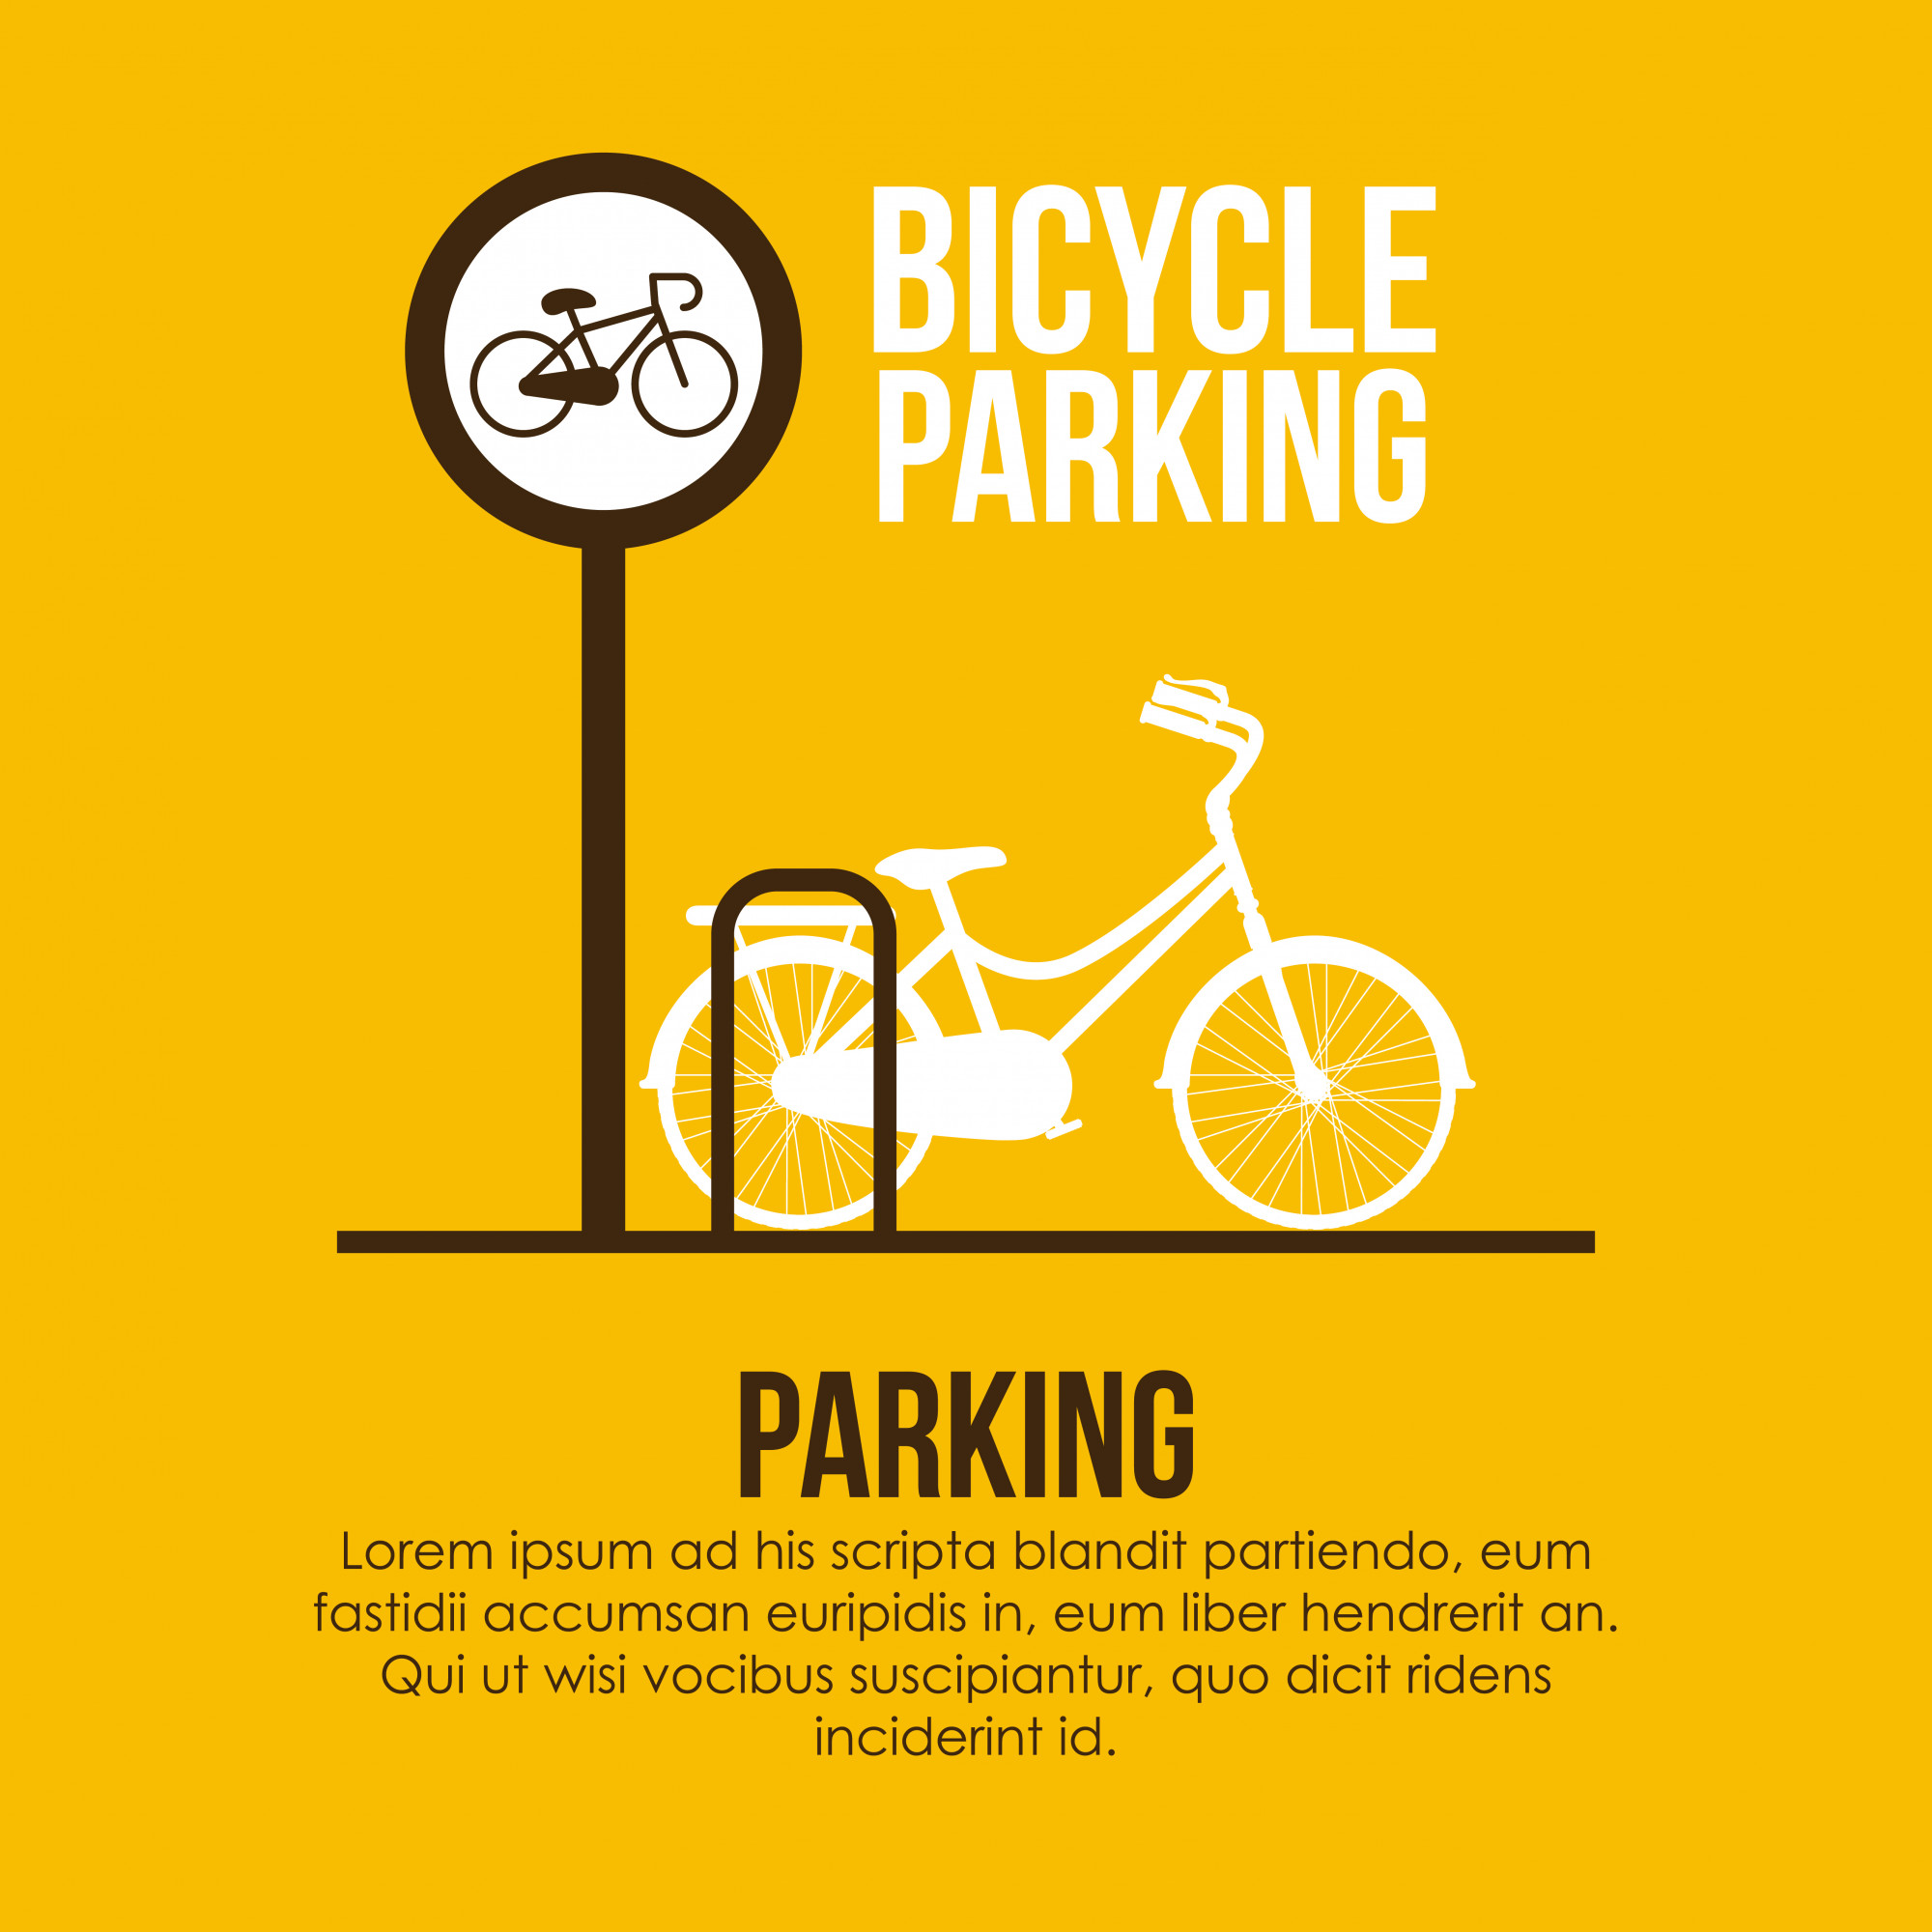 Parking design over yellow background vector illustration